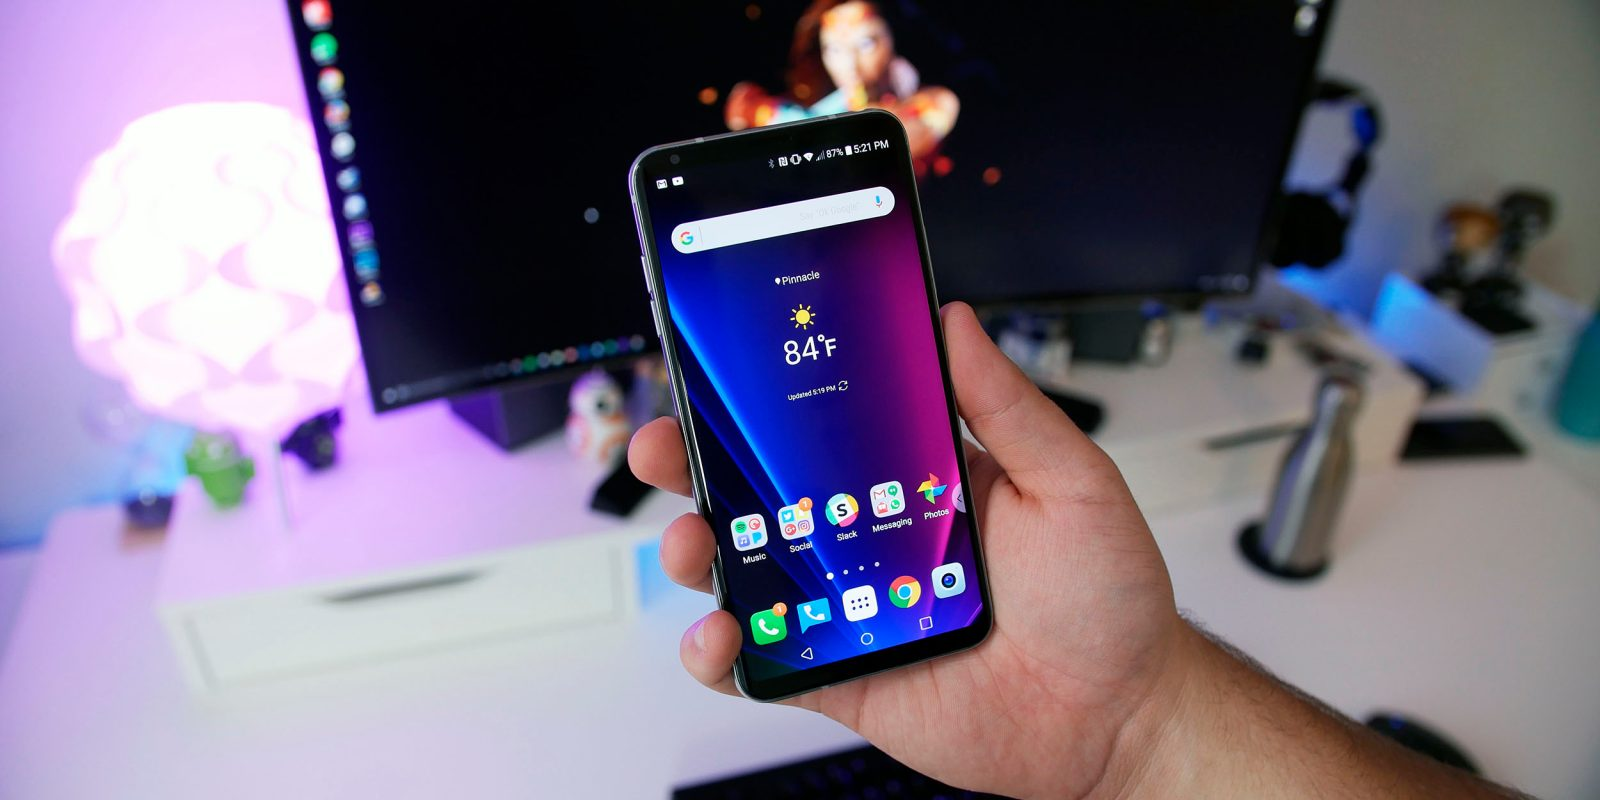 LG V30: 'Long weekend' impressions on the display, camera, battery